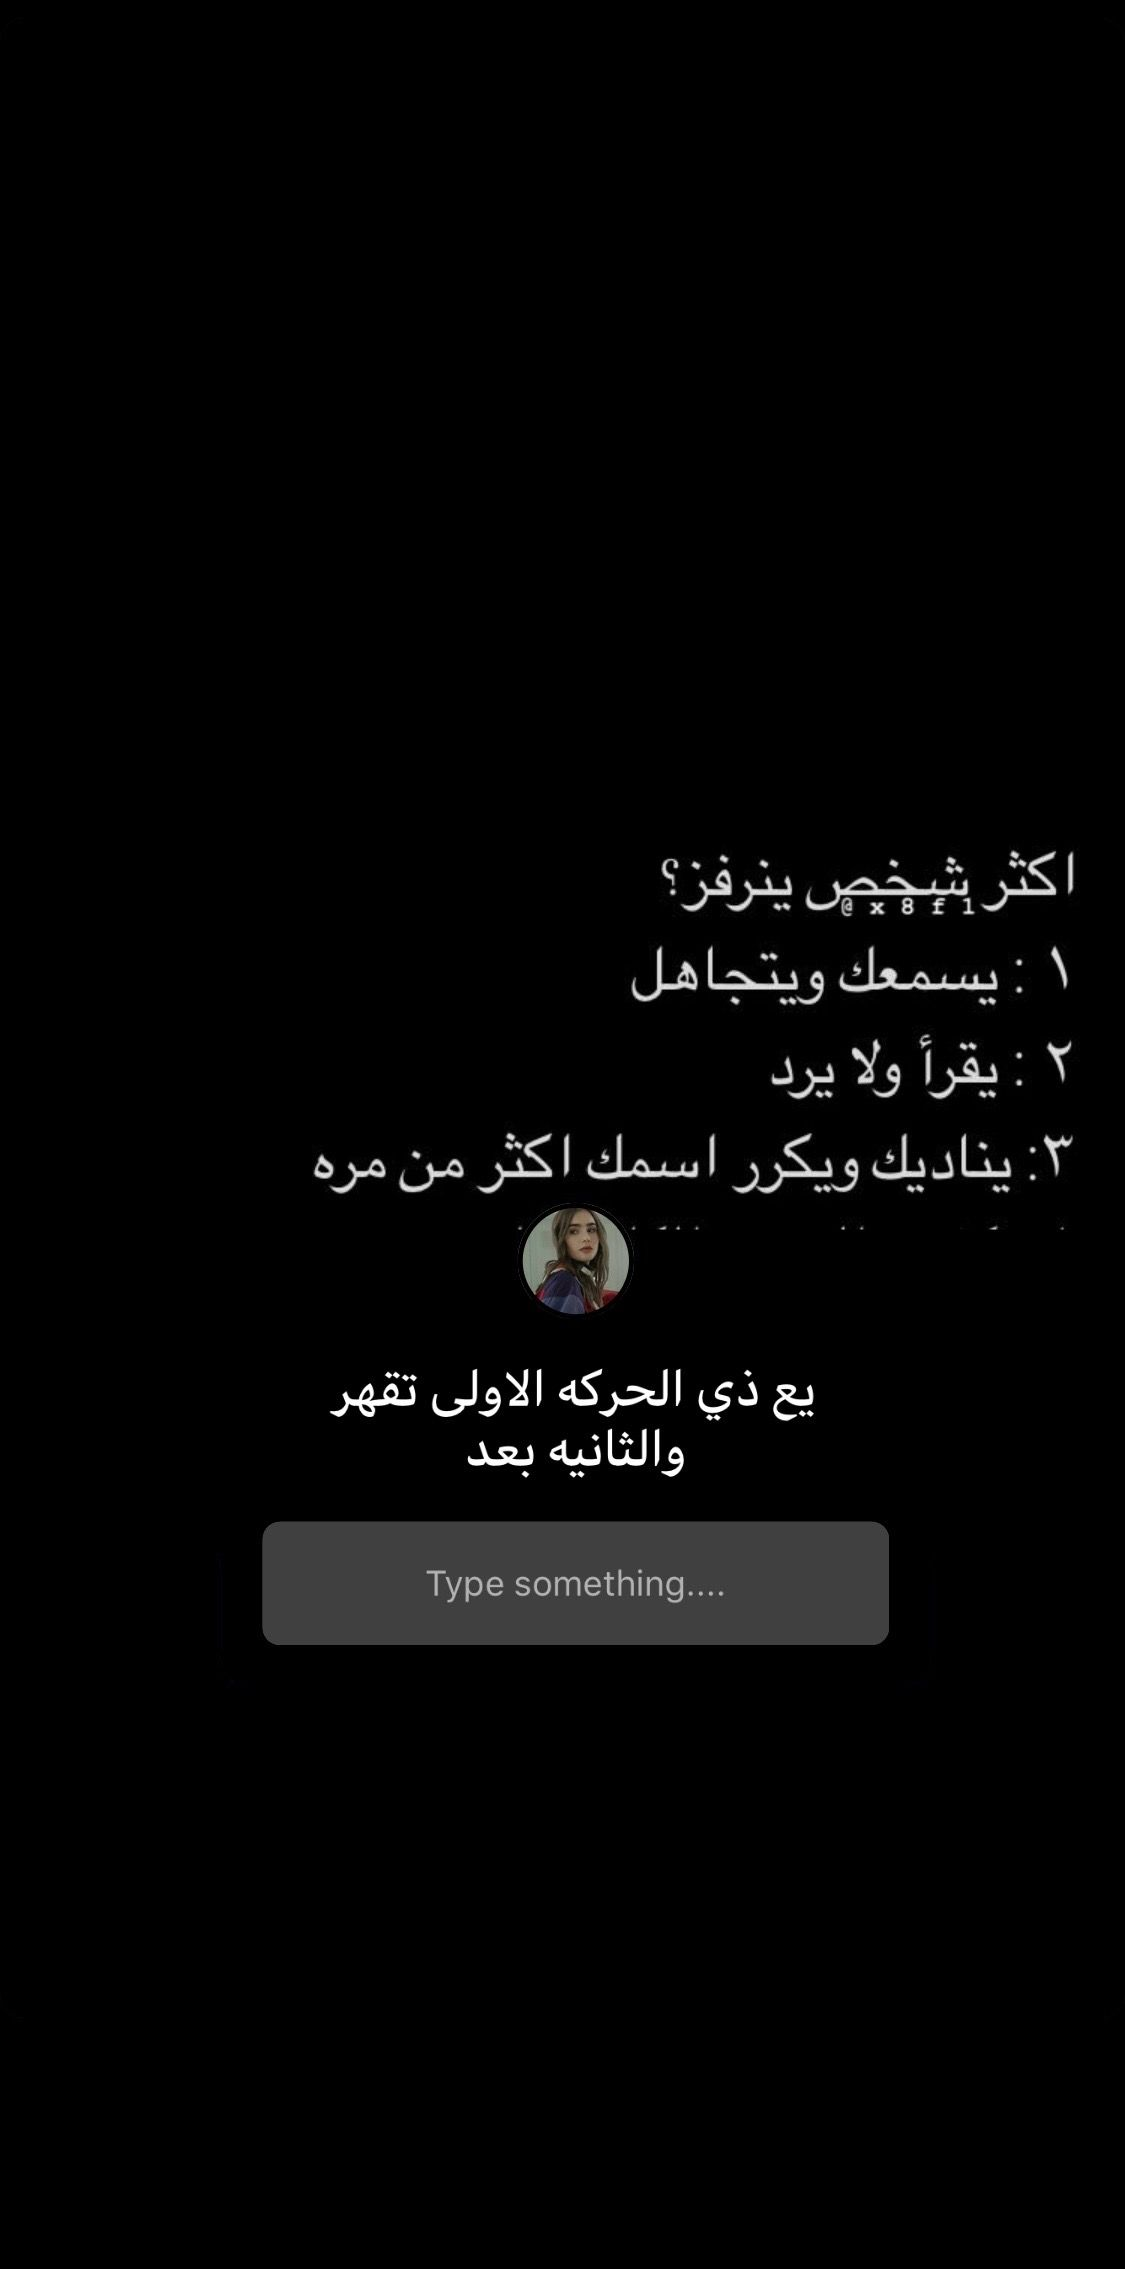 Pin By On فعاليات ستوري Quotes For Book Lovers Instagram Quotes Fun Quotes Funny